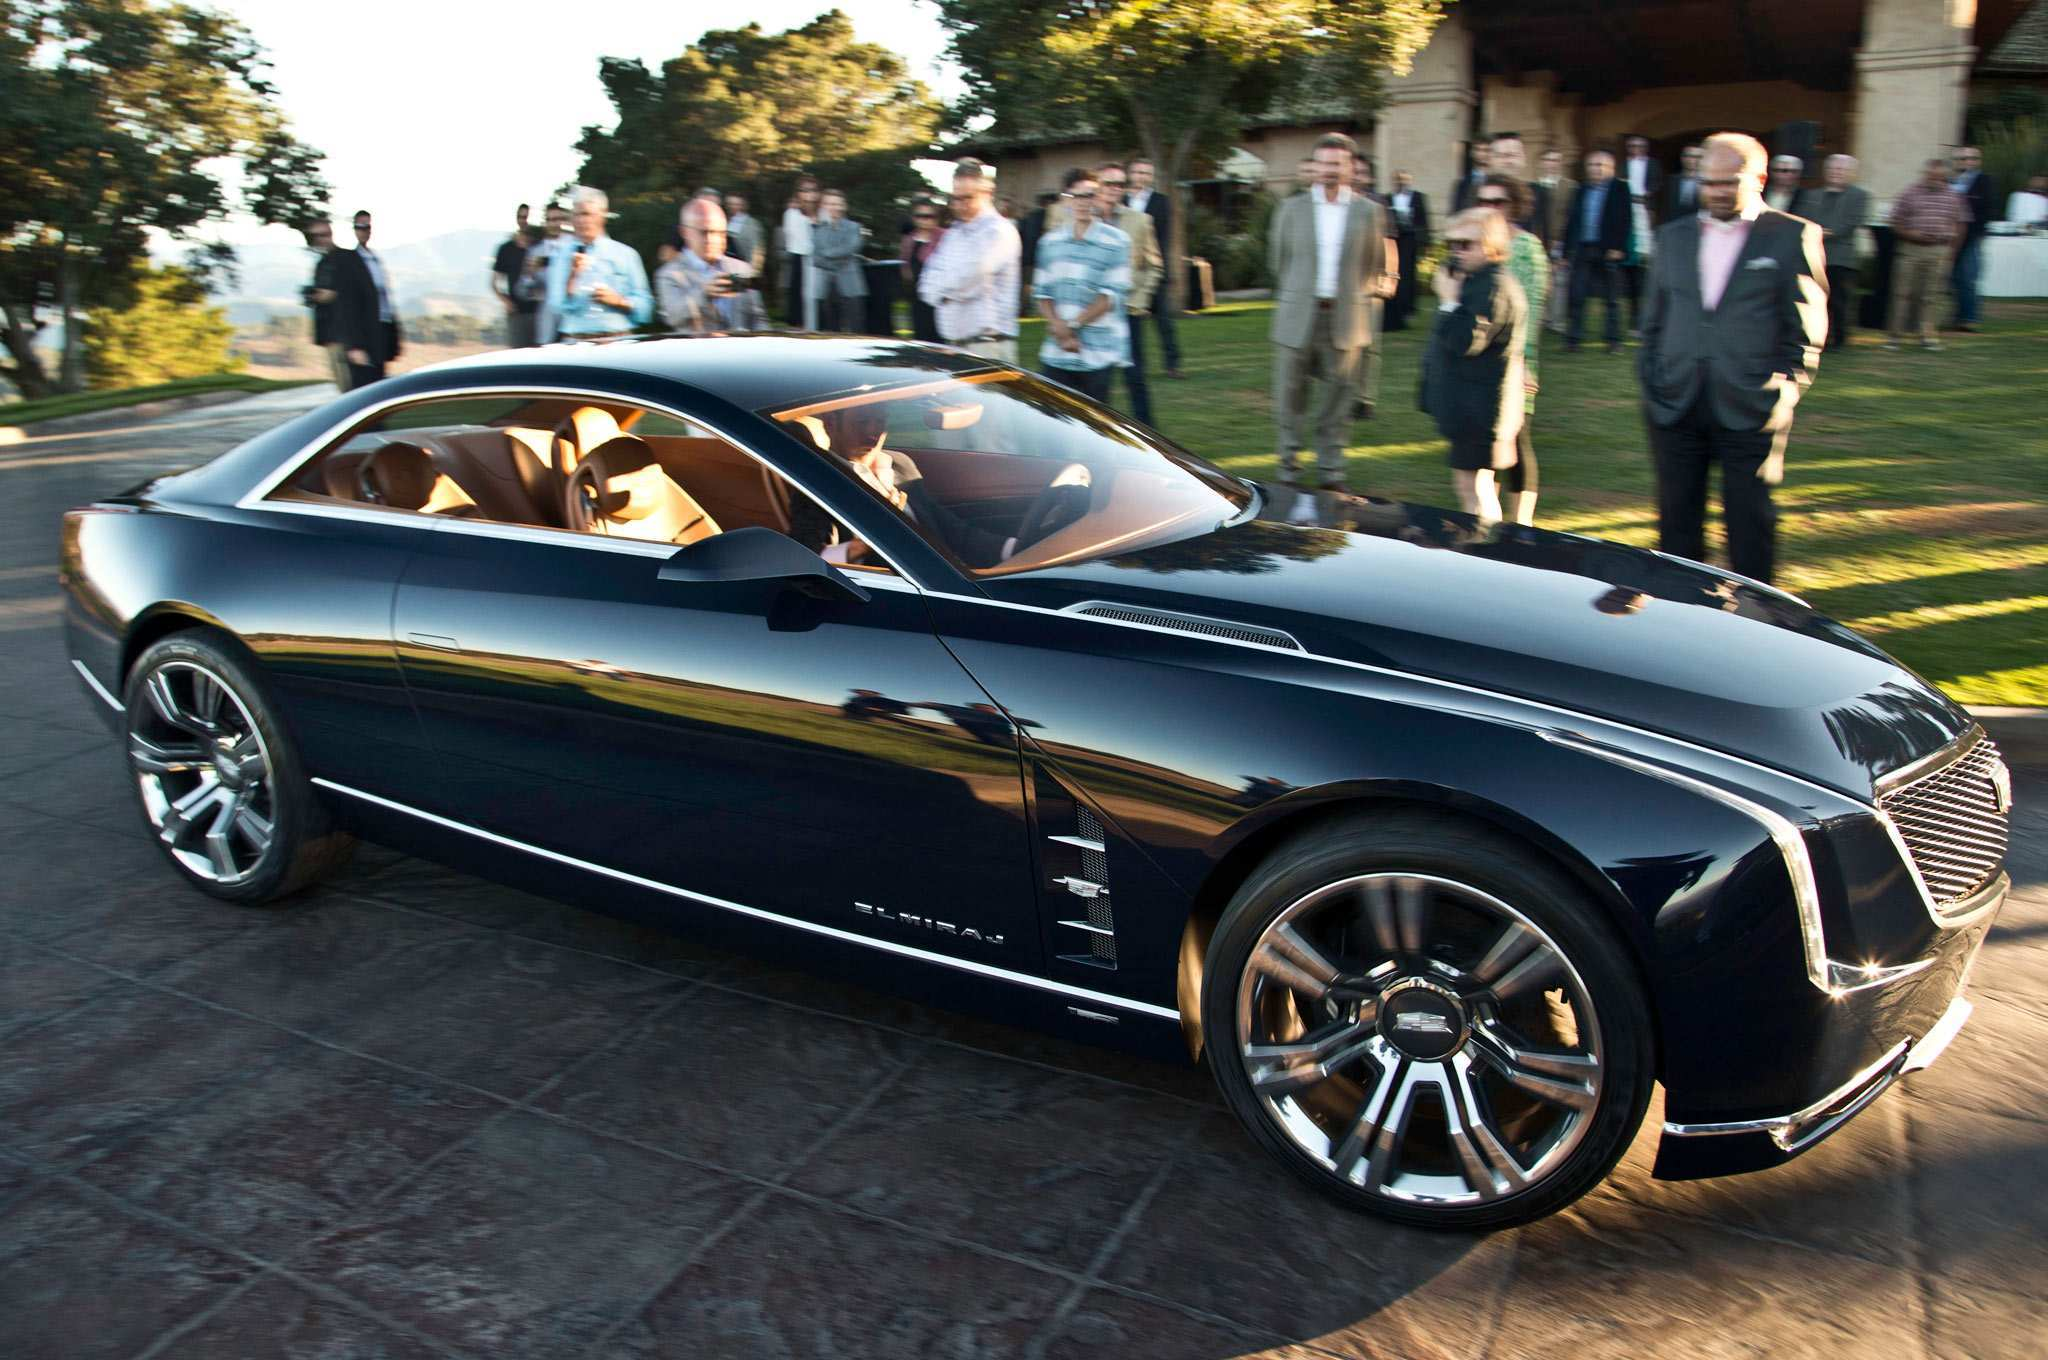 58 Concept of Elmiraj Cadillac Price Performance and New Engine by Elmiraj Cadillac Price